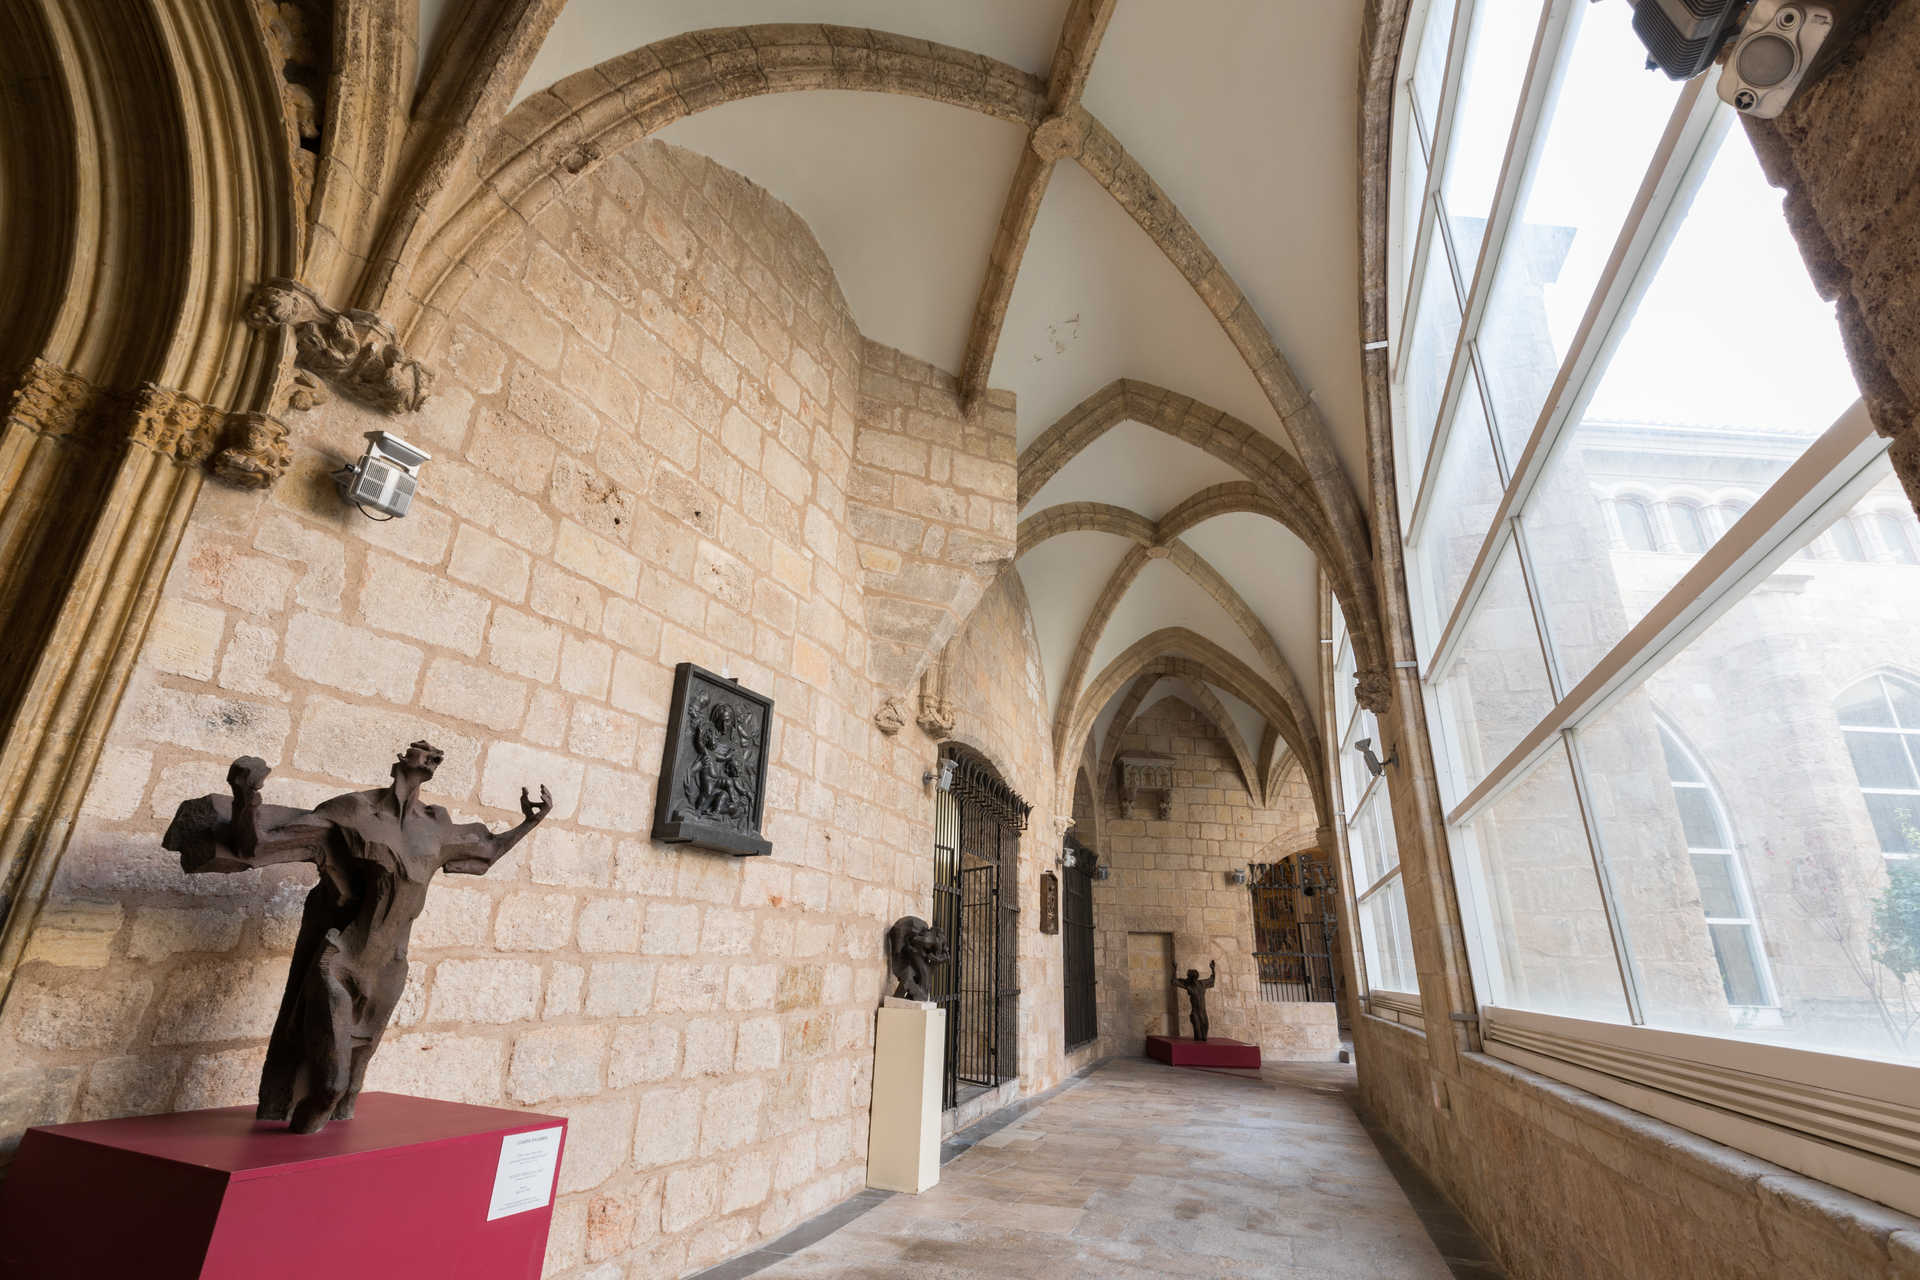 MUSEUM OF THE CATHEDRAL